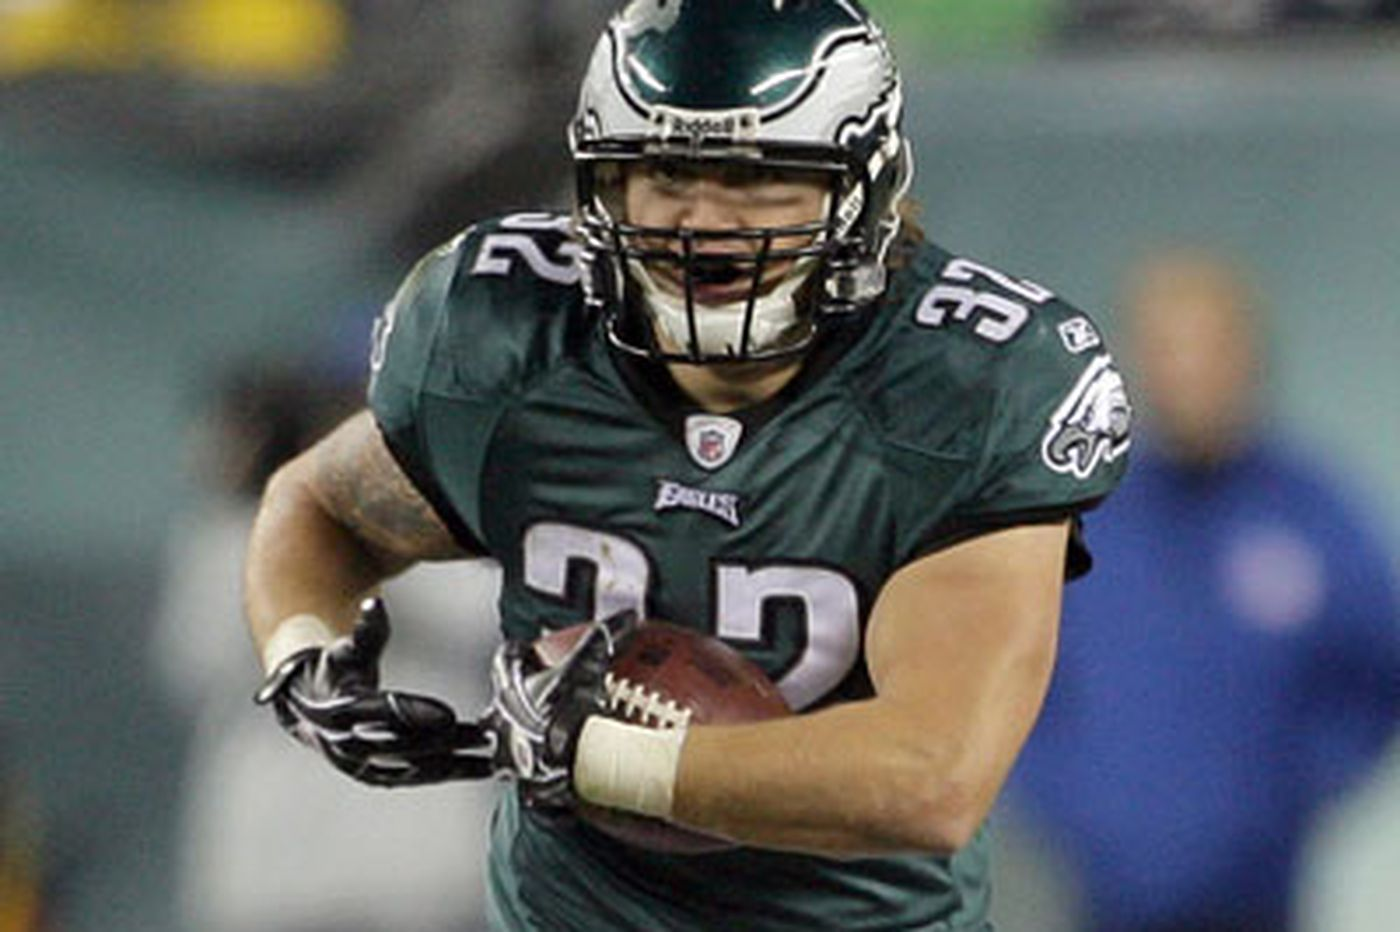 Paul Domowitch: Former rejects make cut with Eagles